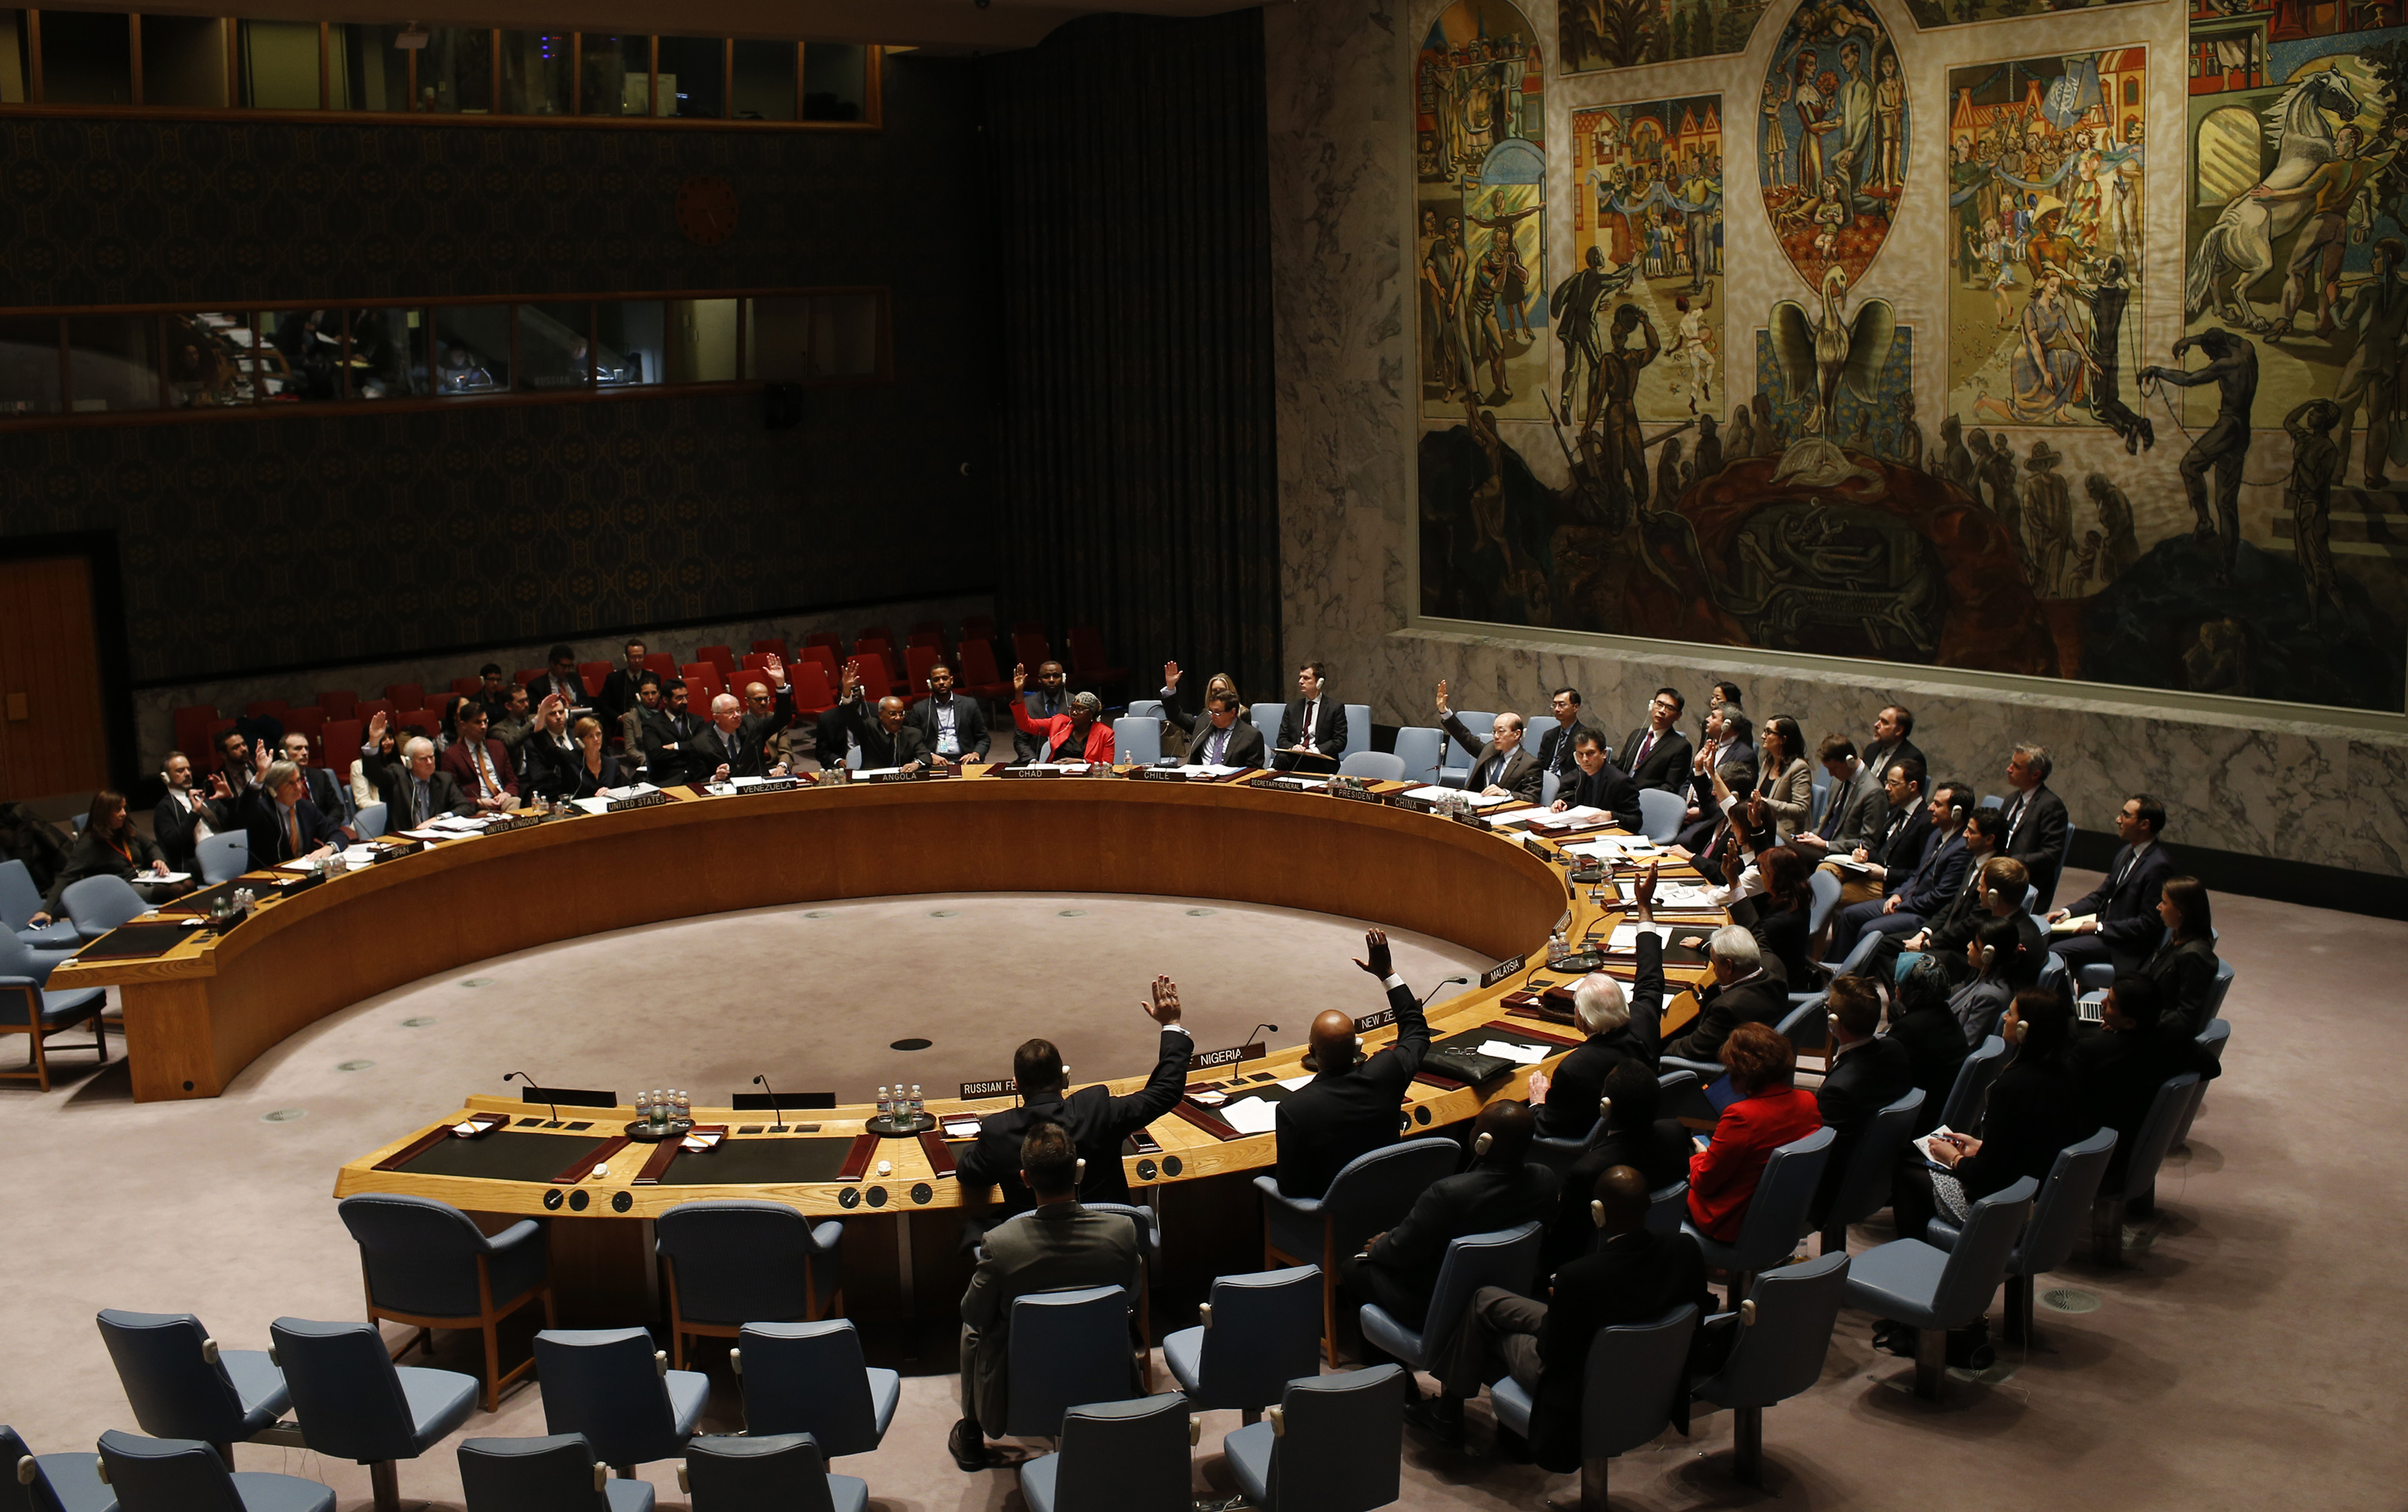 The U.N. Security Council votes in favor of a resolution demanding the Houthi militia's withdrawal from Yemeni government institutions during a meeting at the U.N. headquarters in New York City on Feb. 15, 2015